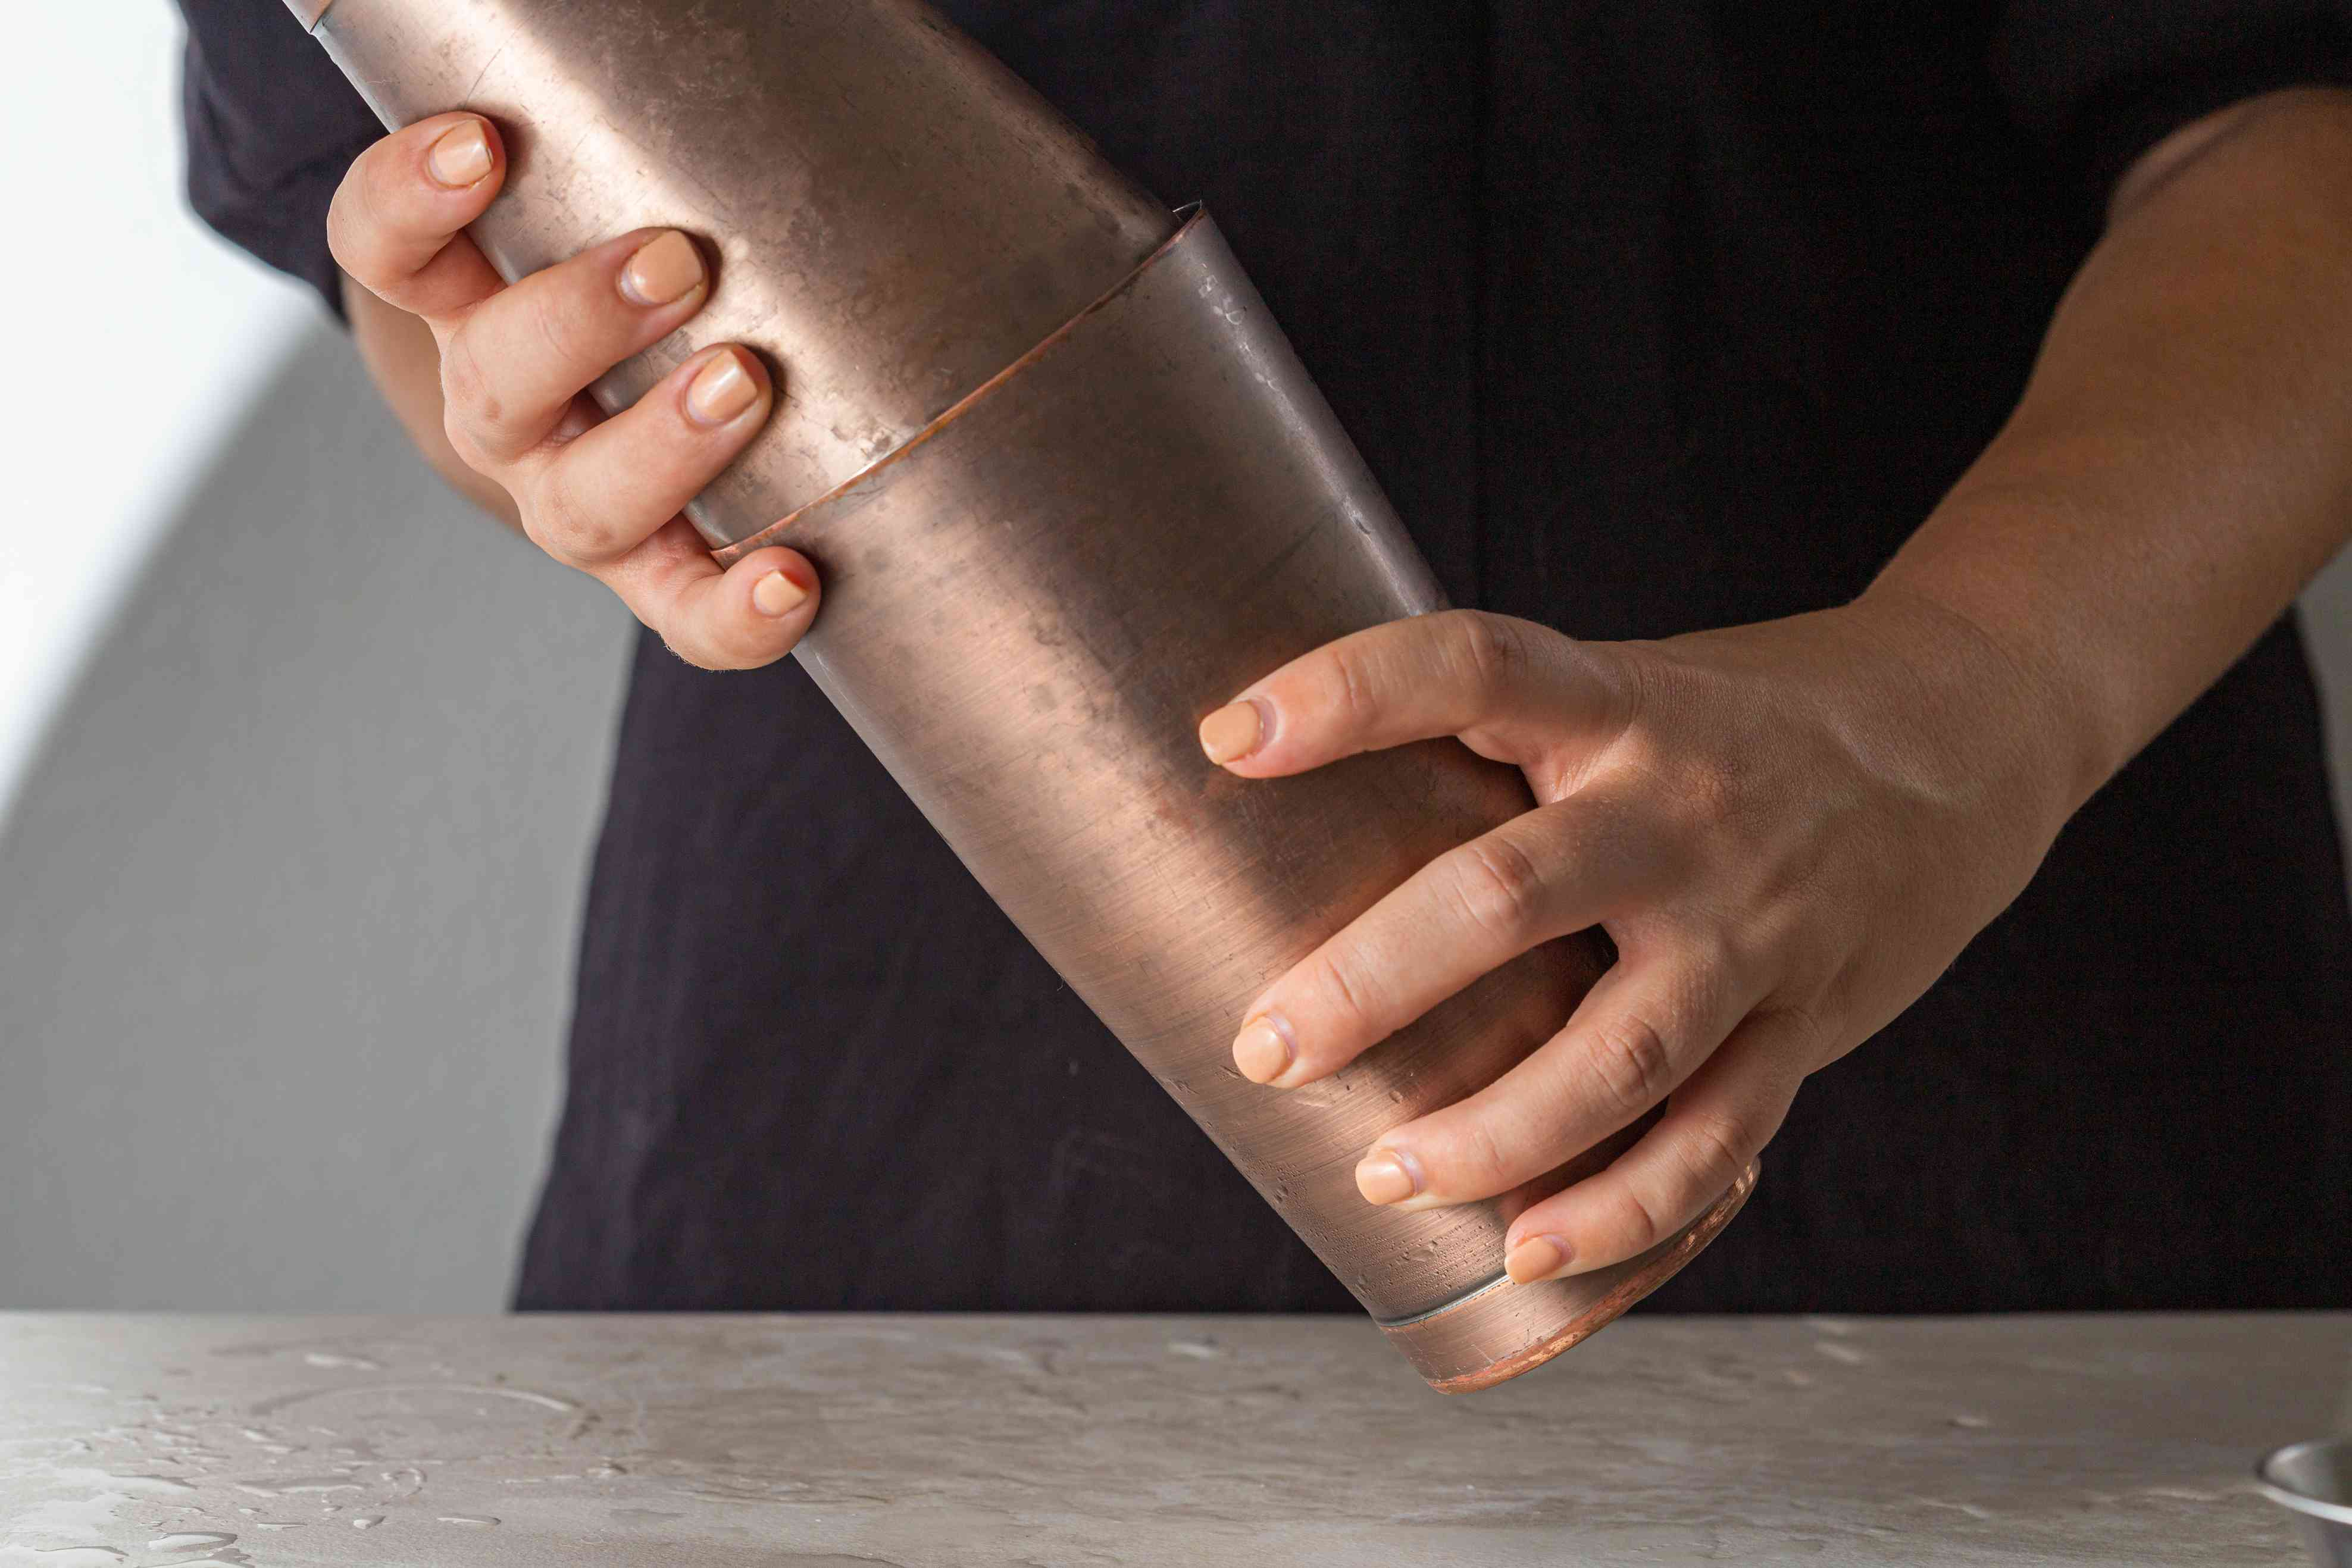 Shaking the cocktail ingredients in a shaker